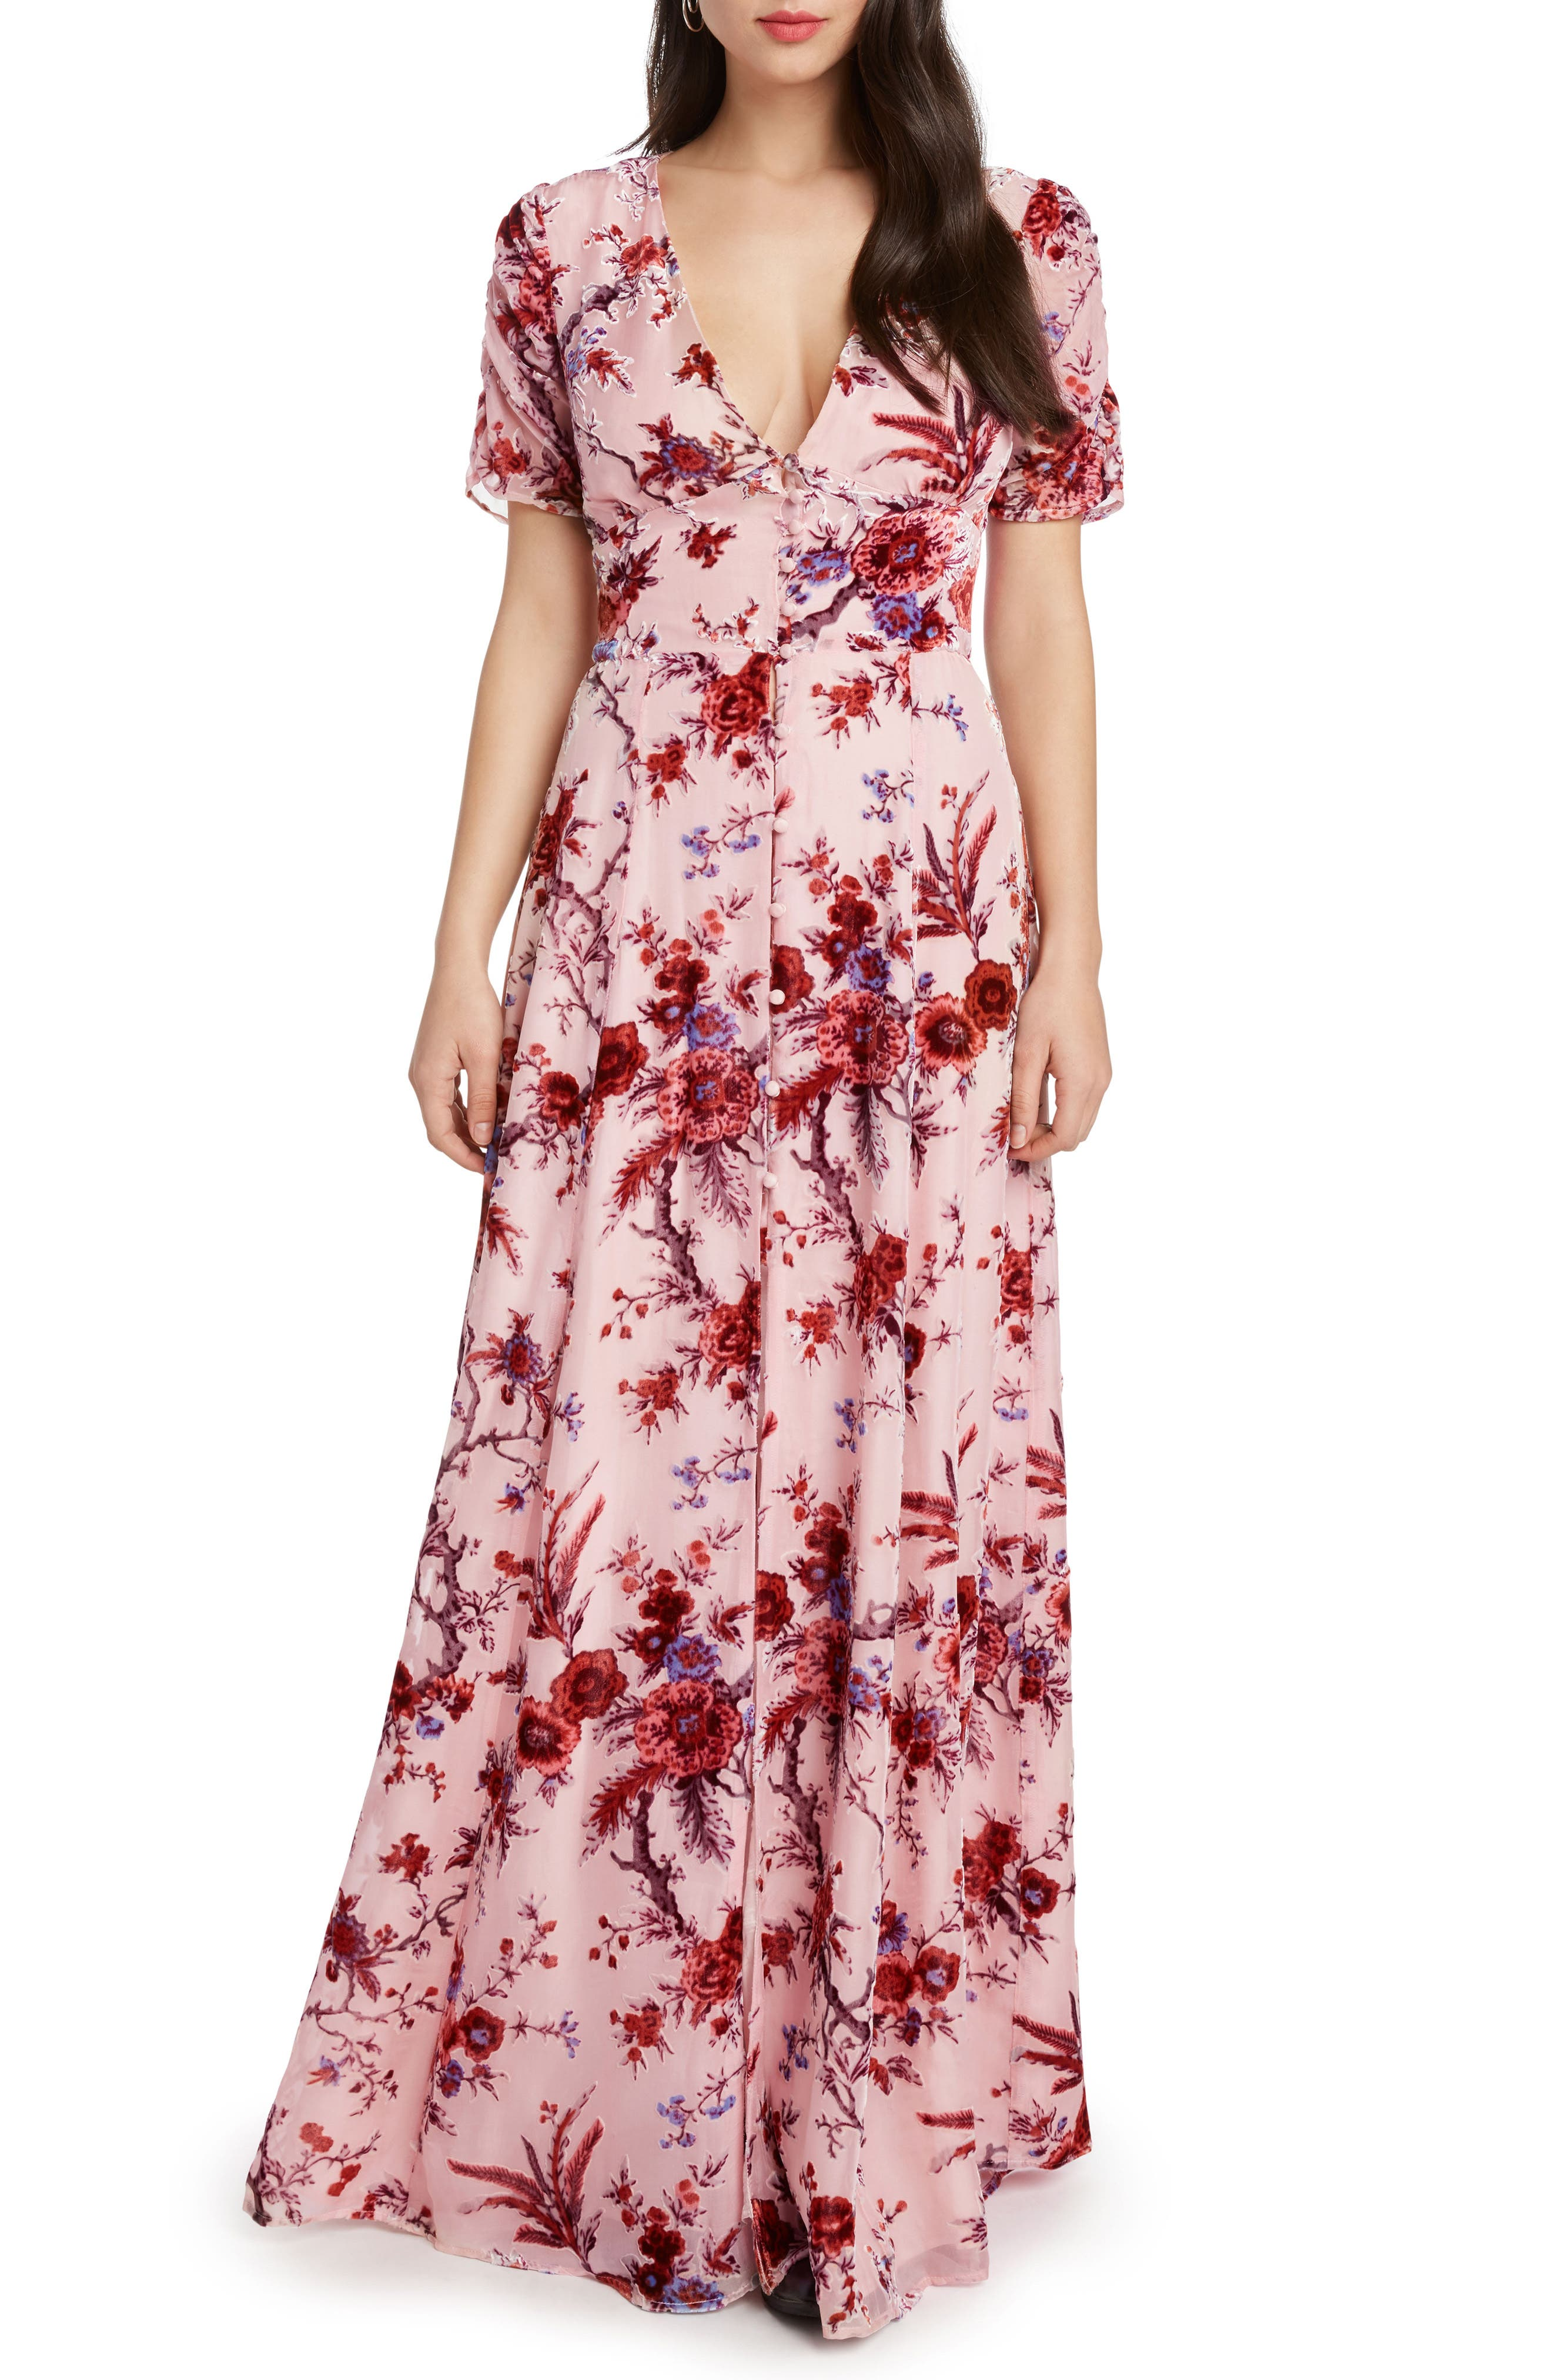 WILLOW & CLAY FLORAL BURNOUT MAXI DRESS